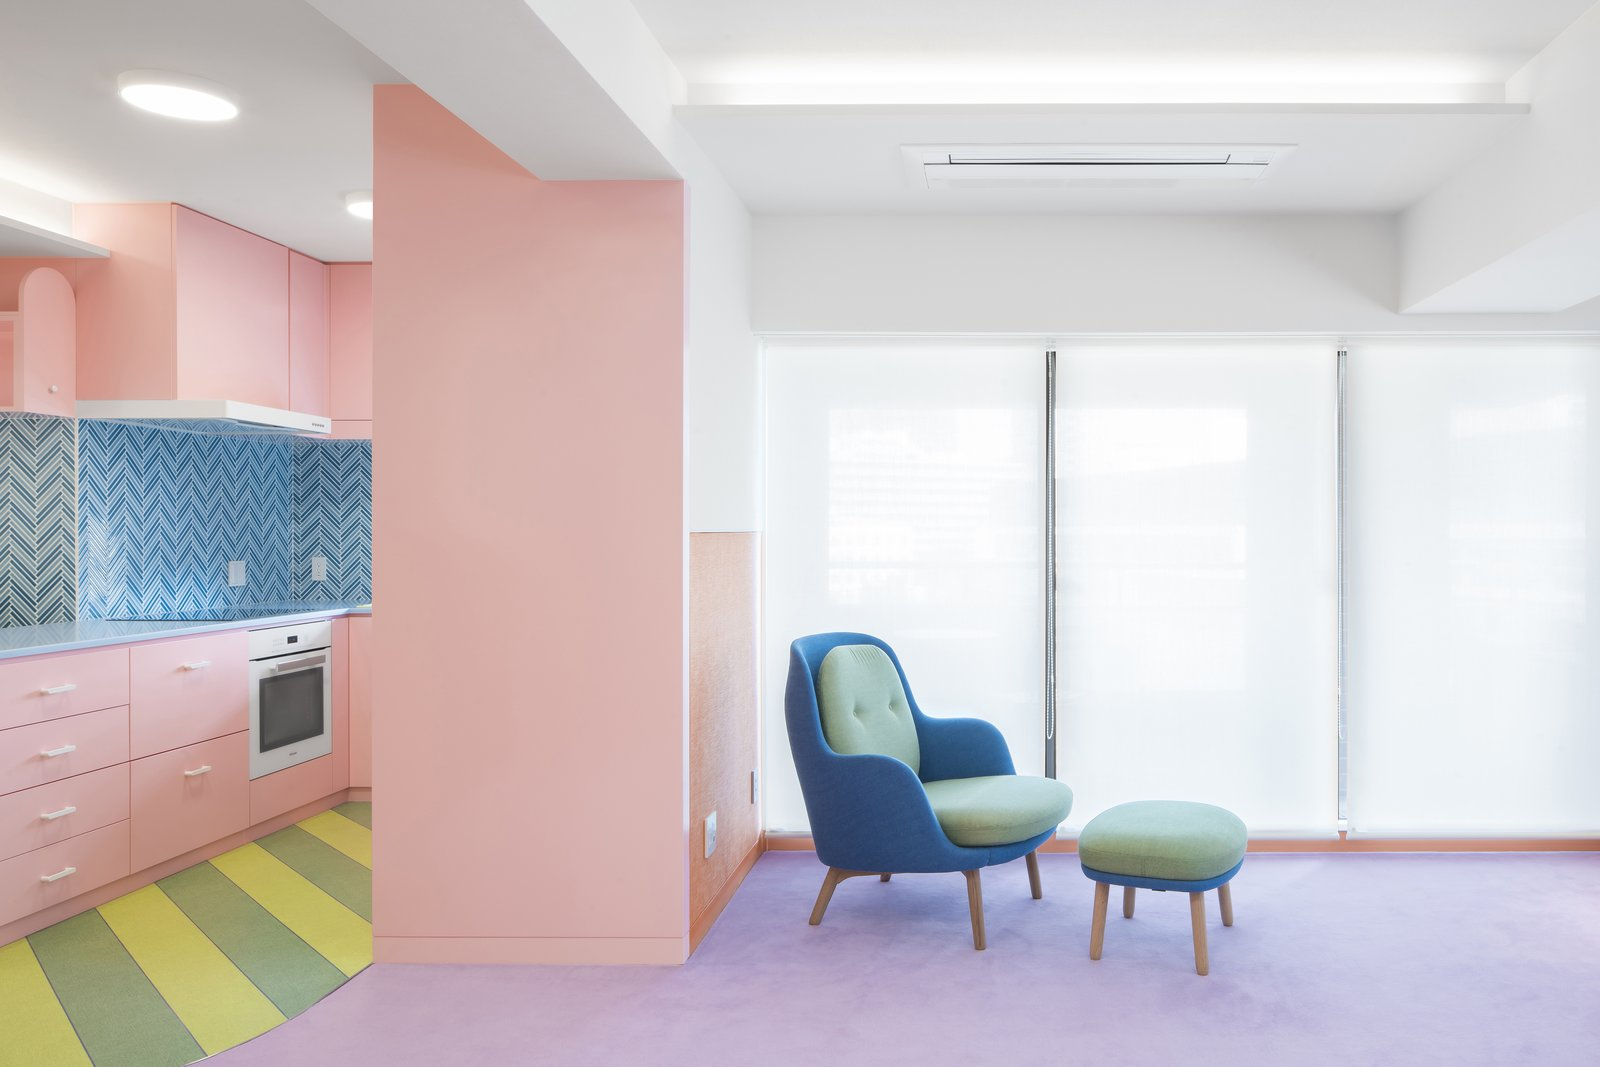 The rosy, dull pink of the kitchen cabinets bleeds into the living room but is starkly contrasted with the striped green-and-yellow floor and blue backsplash in the kitchen and furniture in the living room.